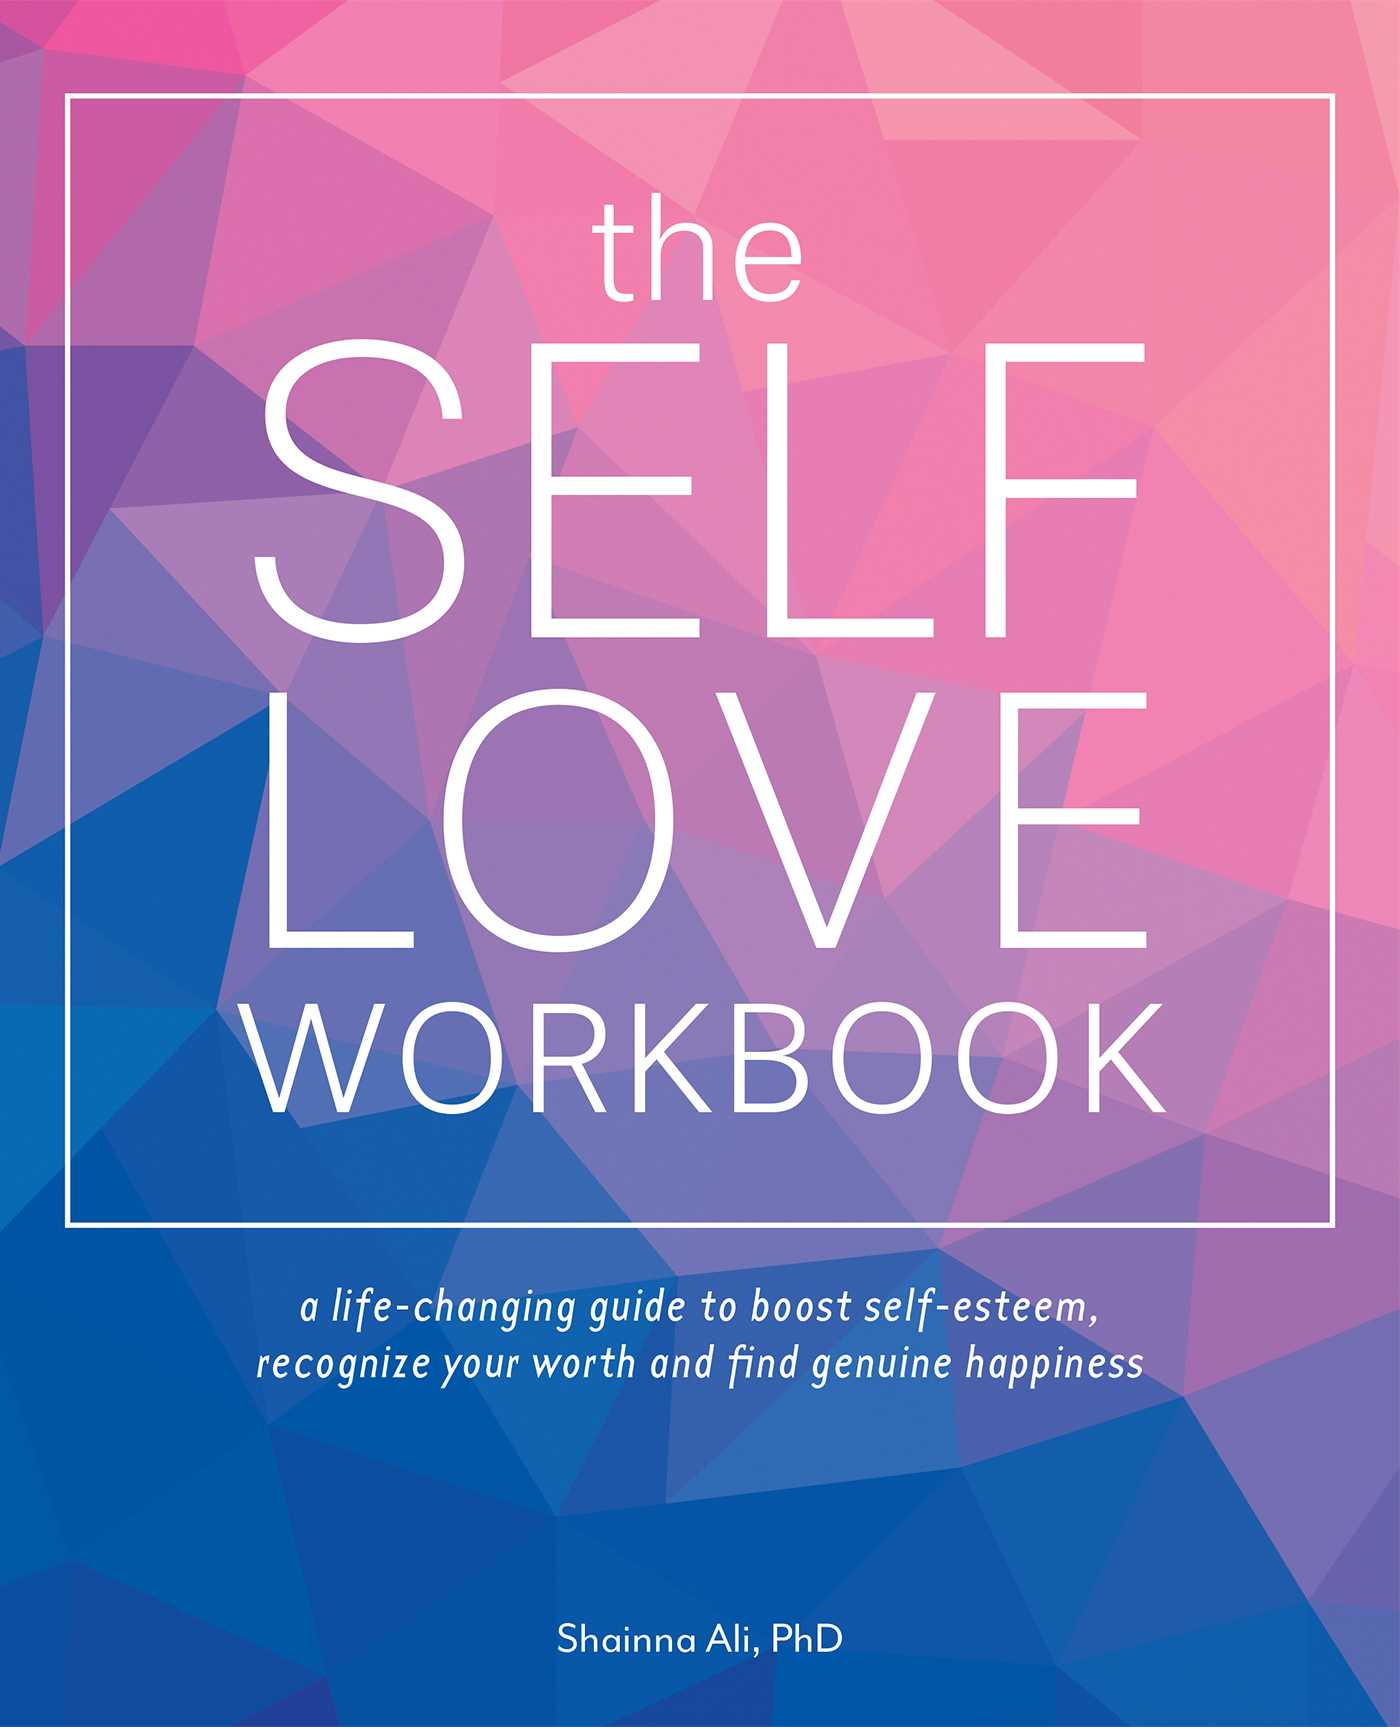 The Self-Love Workbook by Shainna Ali PDF Download